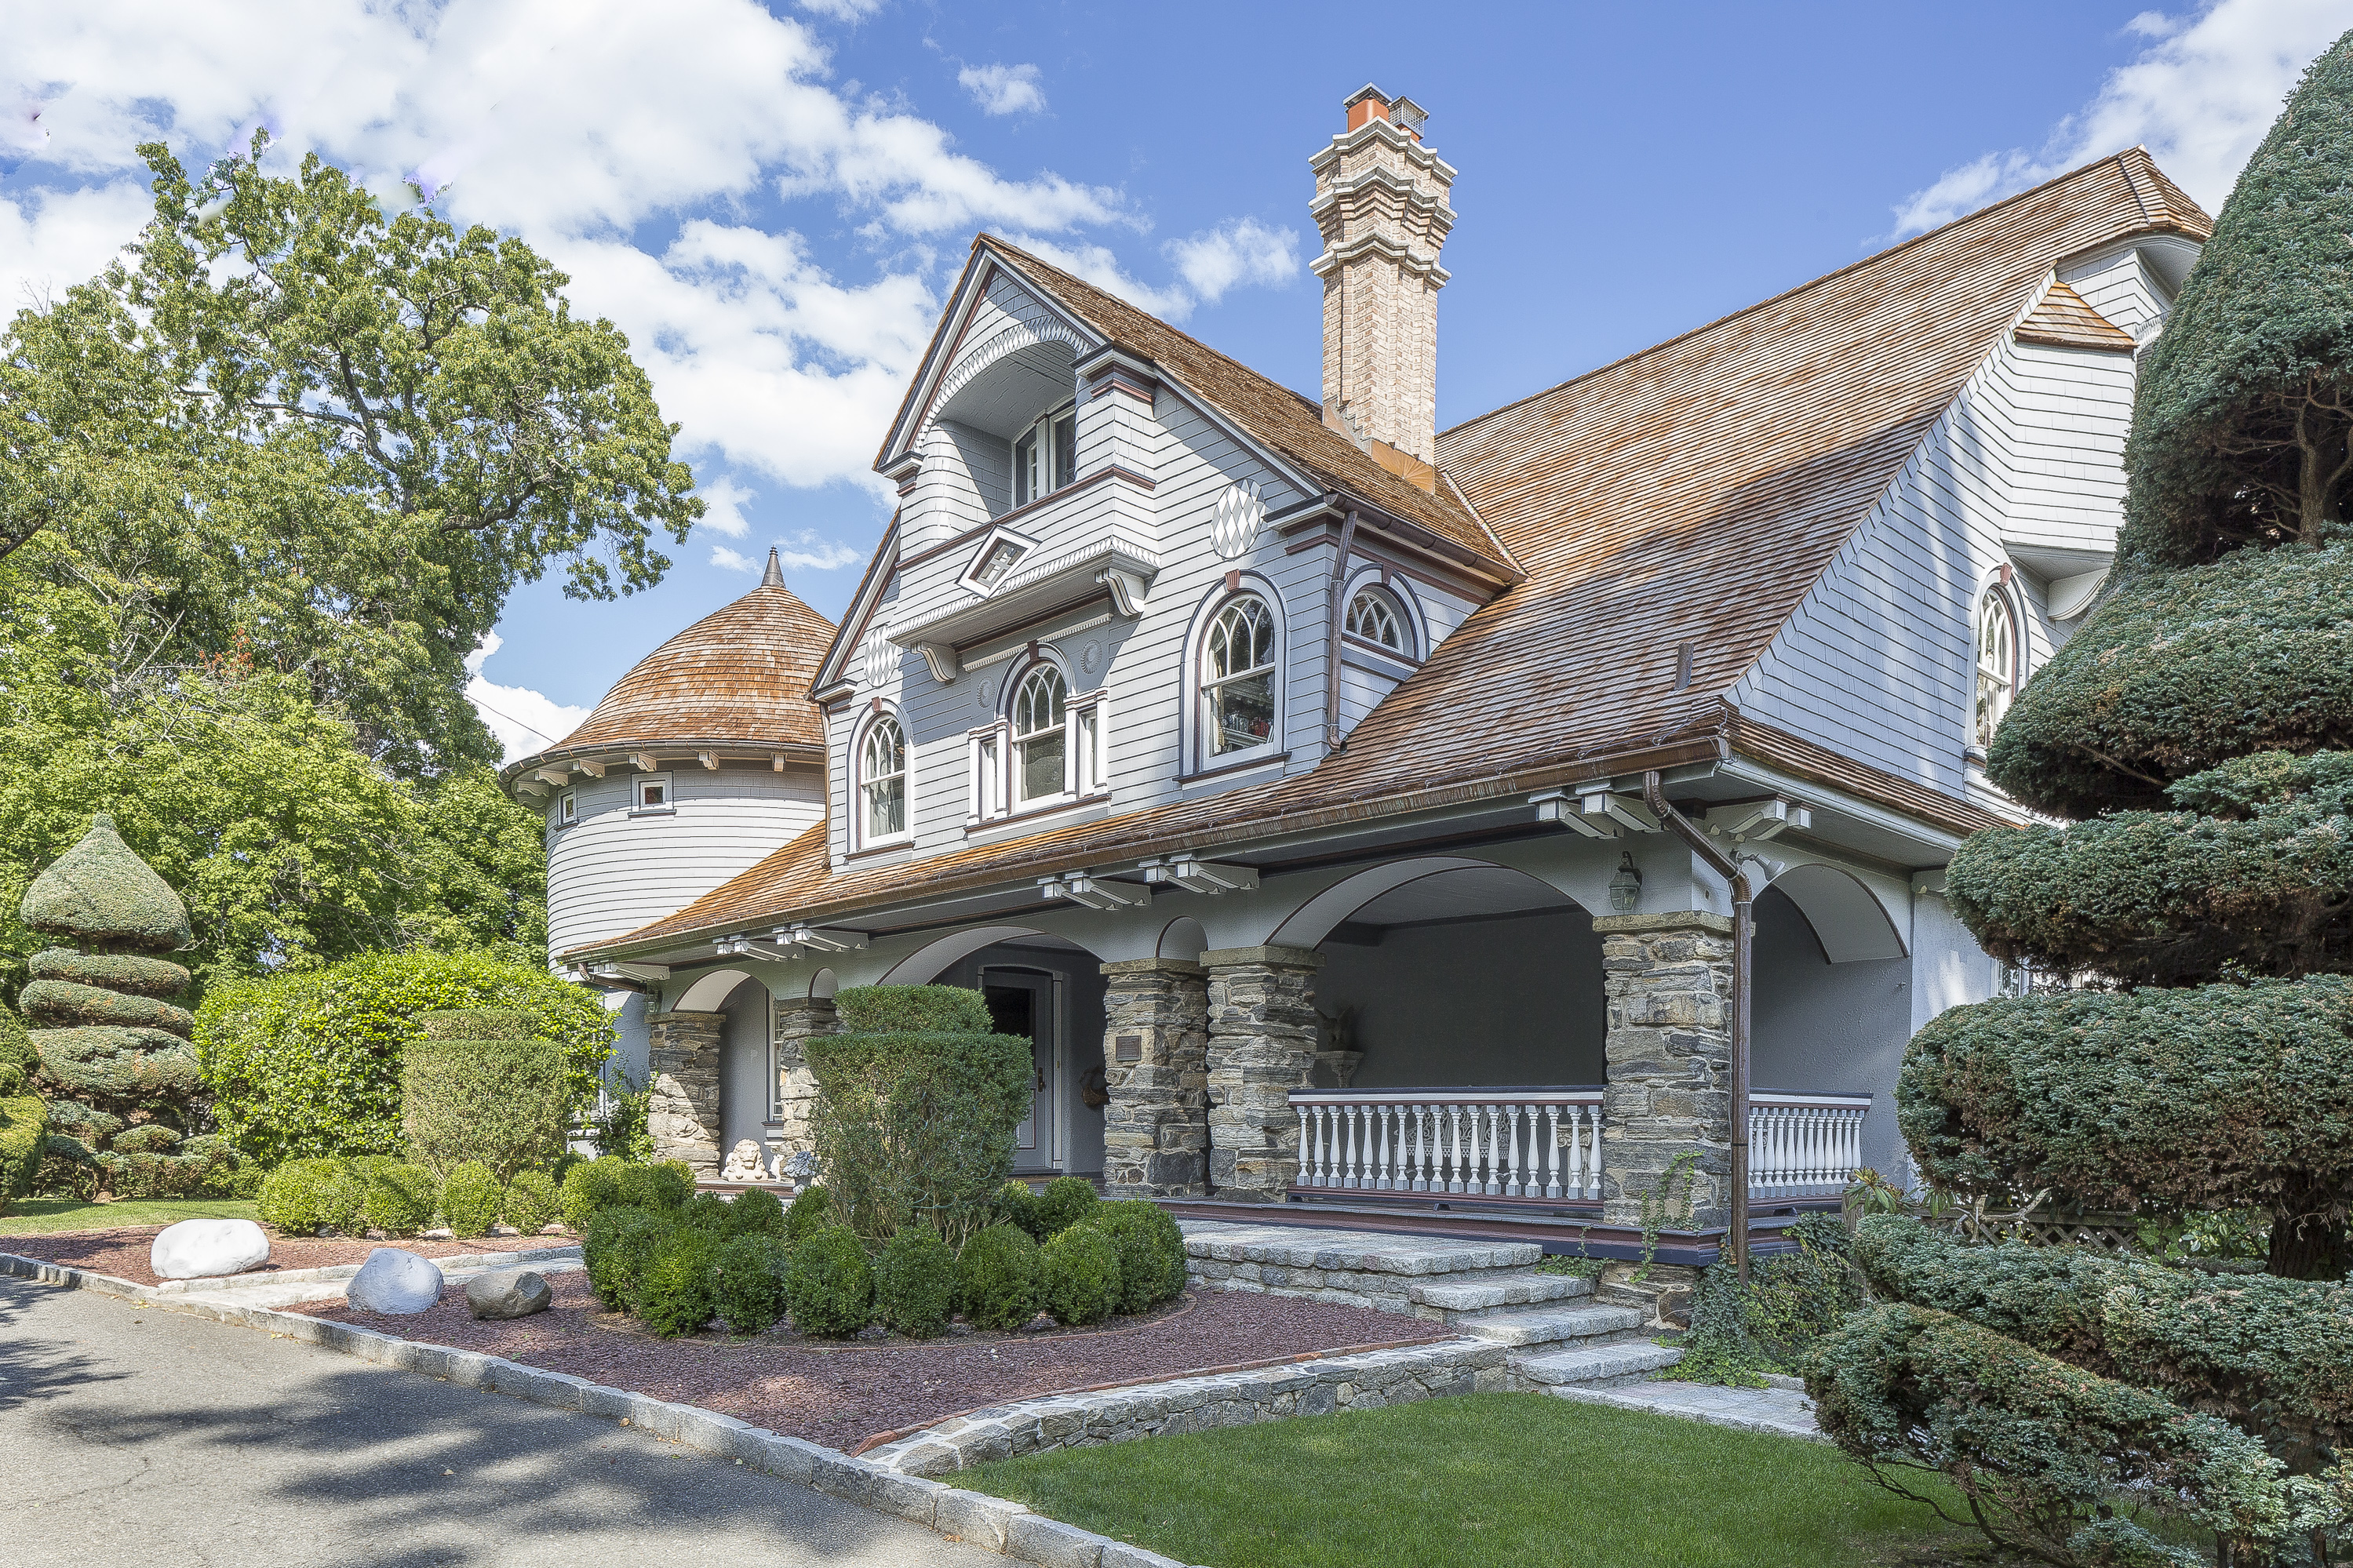 Single Family Home for Sale at Historic Home On The Lawrence Park Hilltop 34 Prescott Avenue Bronxville, New York, 10708 United States